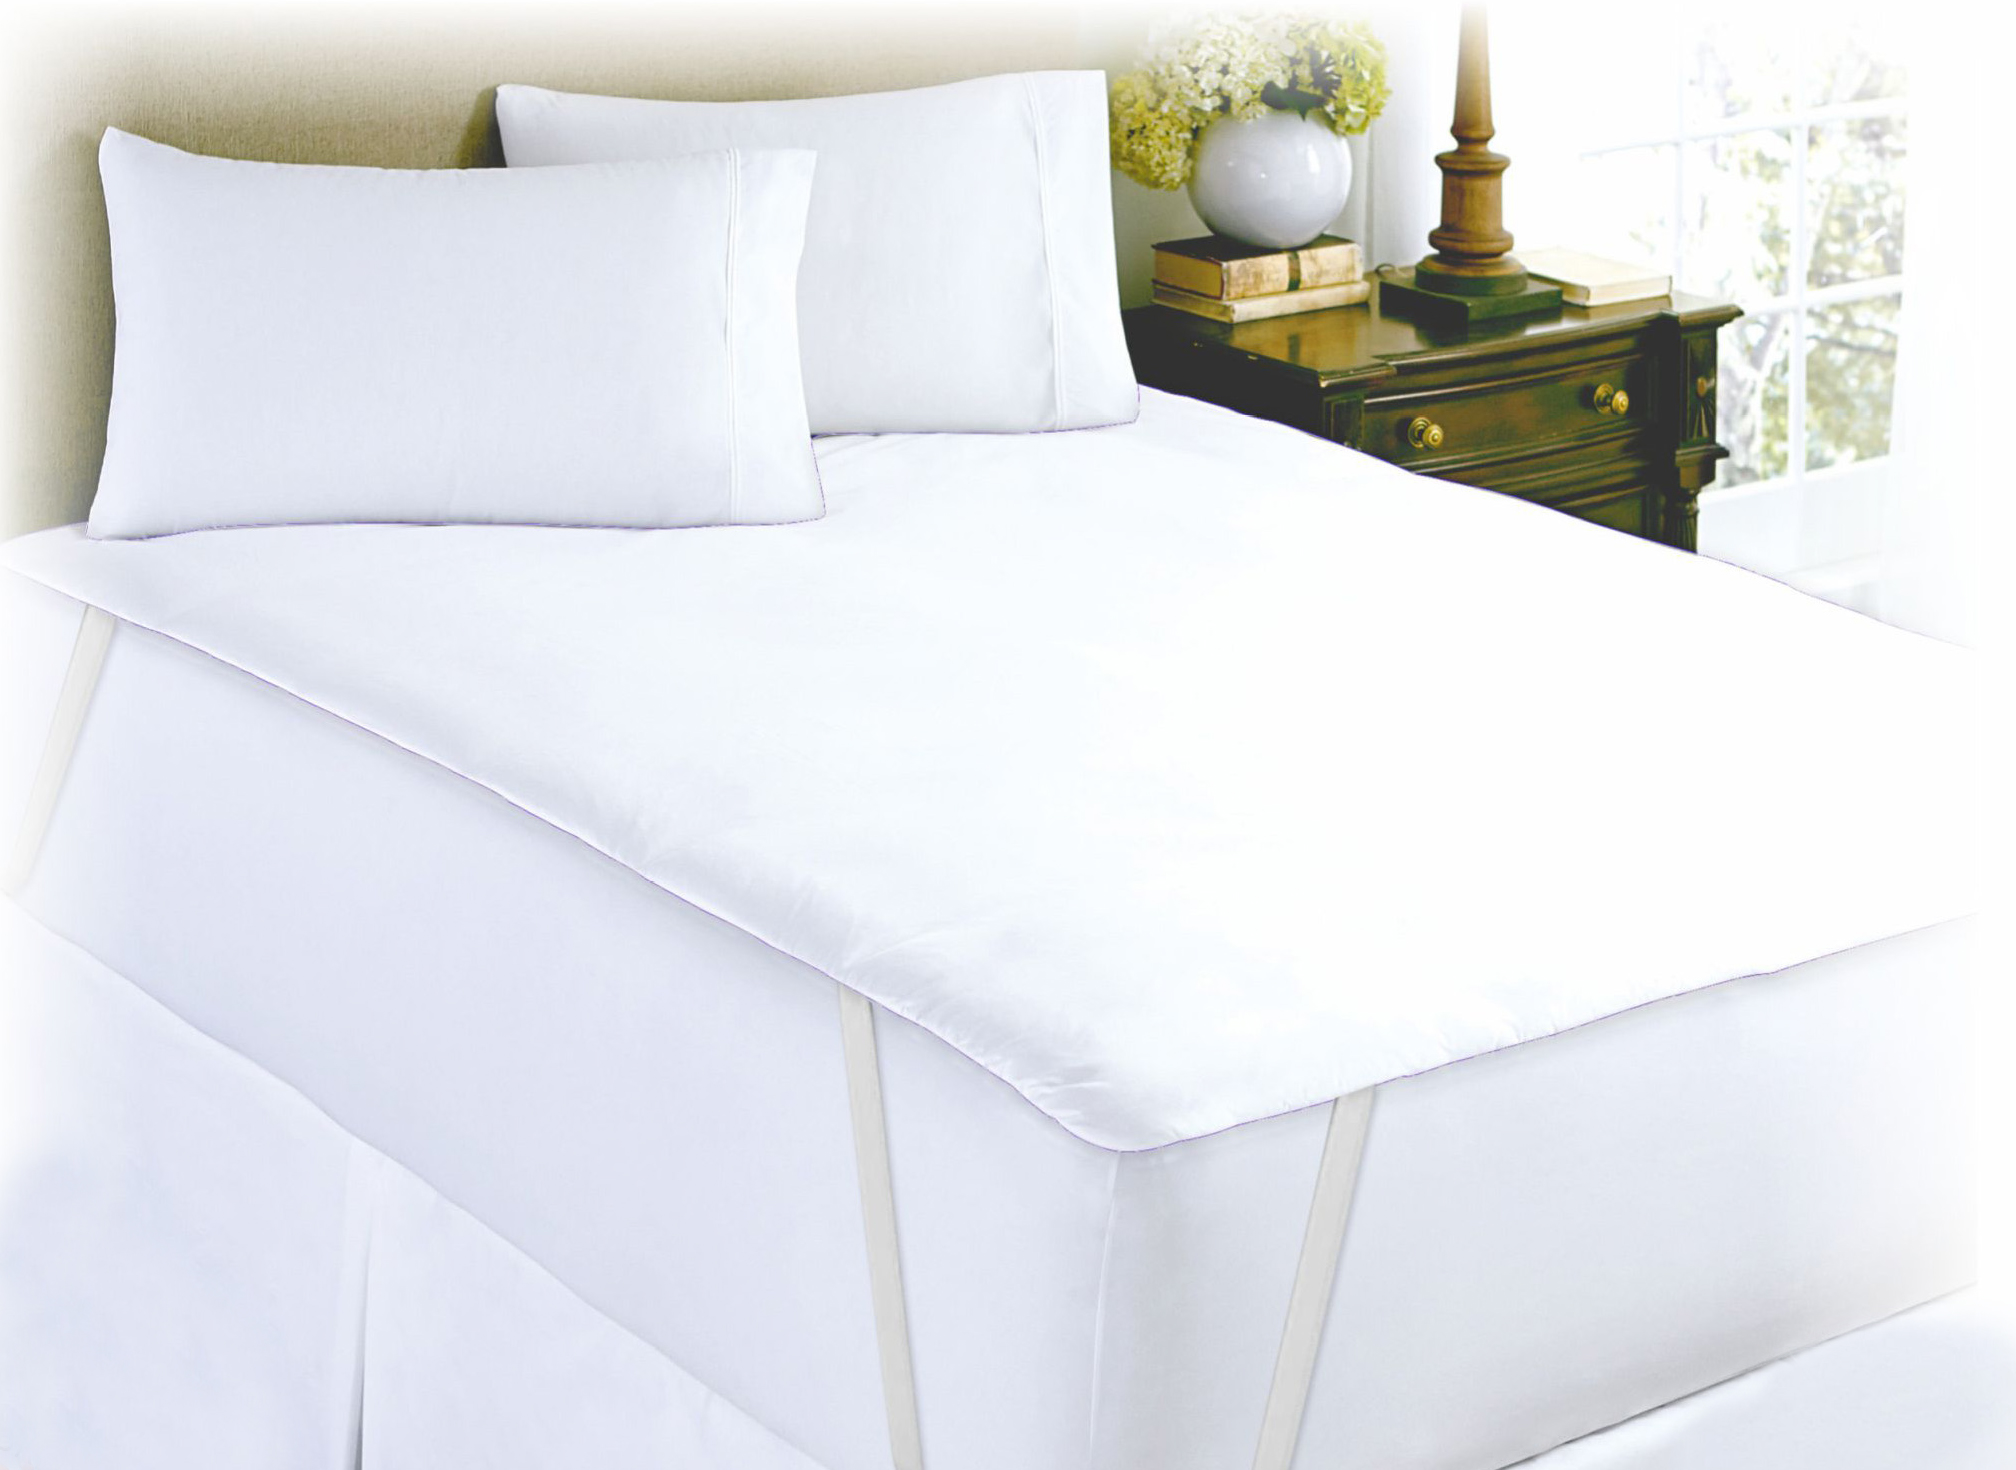 Mattress Protectors in White Colour by Spaces